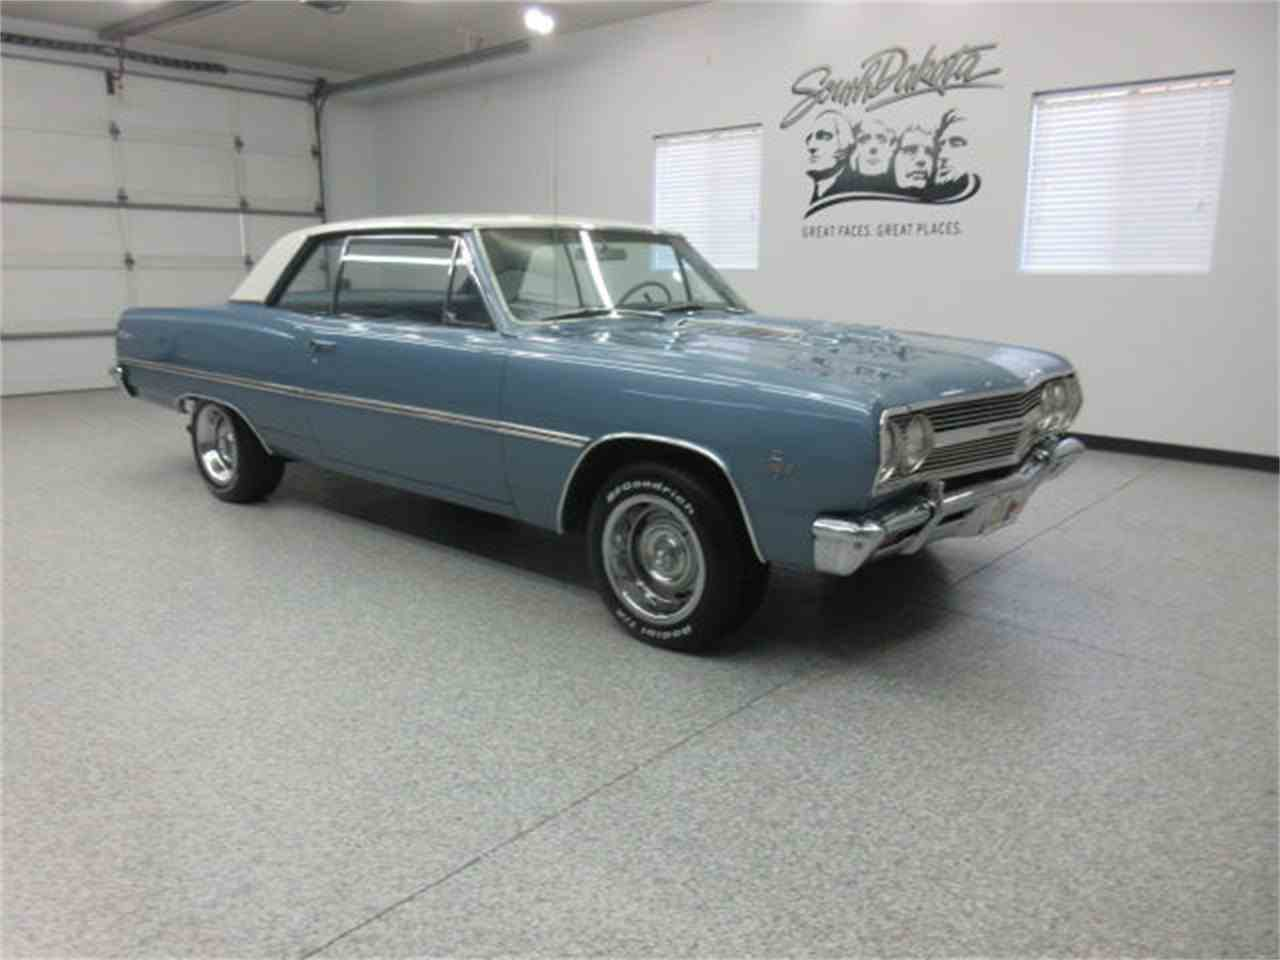 Large Picture of Classic '65 Chevelle located in Sioux Falls South Dakota - $20,975.00 - LSIO